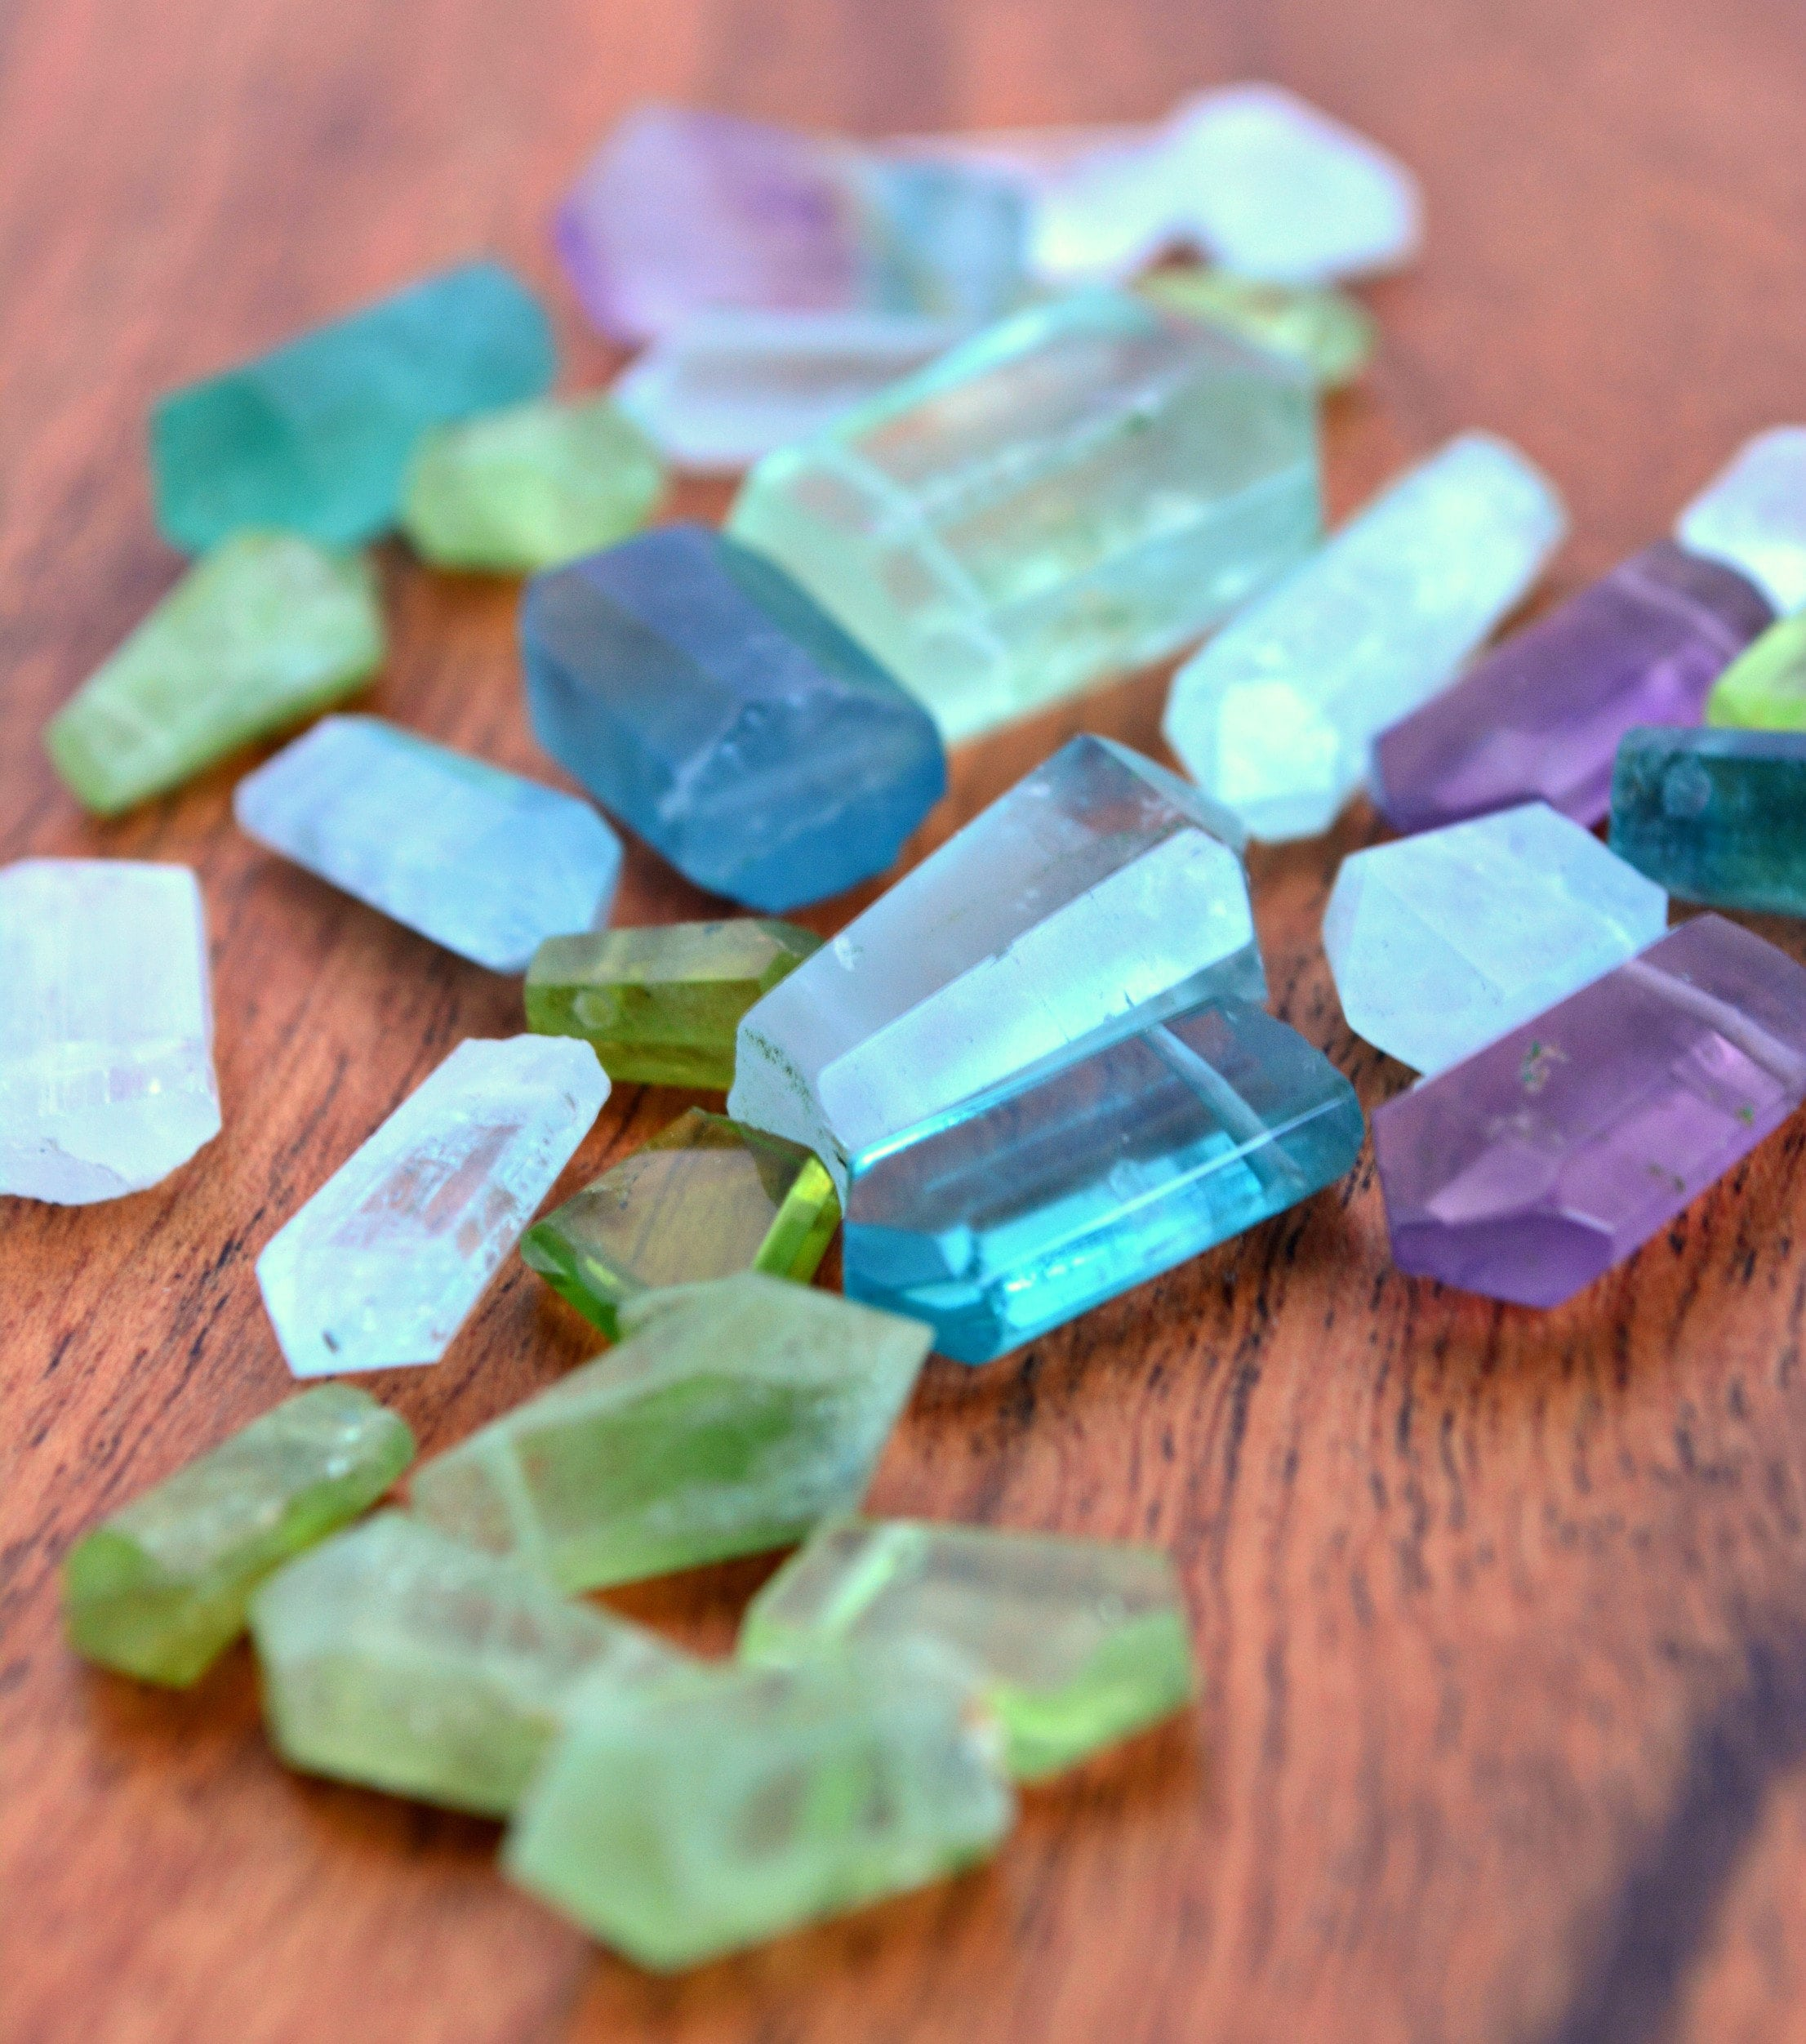 Beautiful Raw Crystal gemstones in Fluorite, Peridot and Aquamarine, perfect for that one of a kind jewelry piece